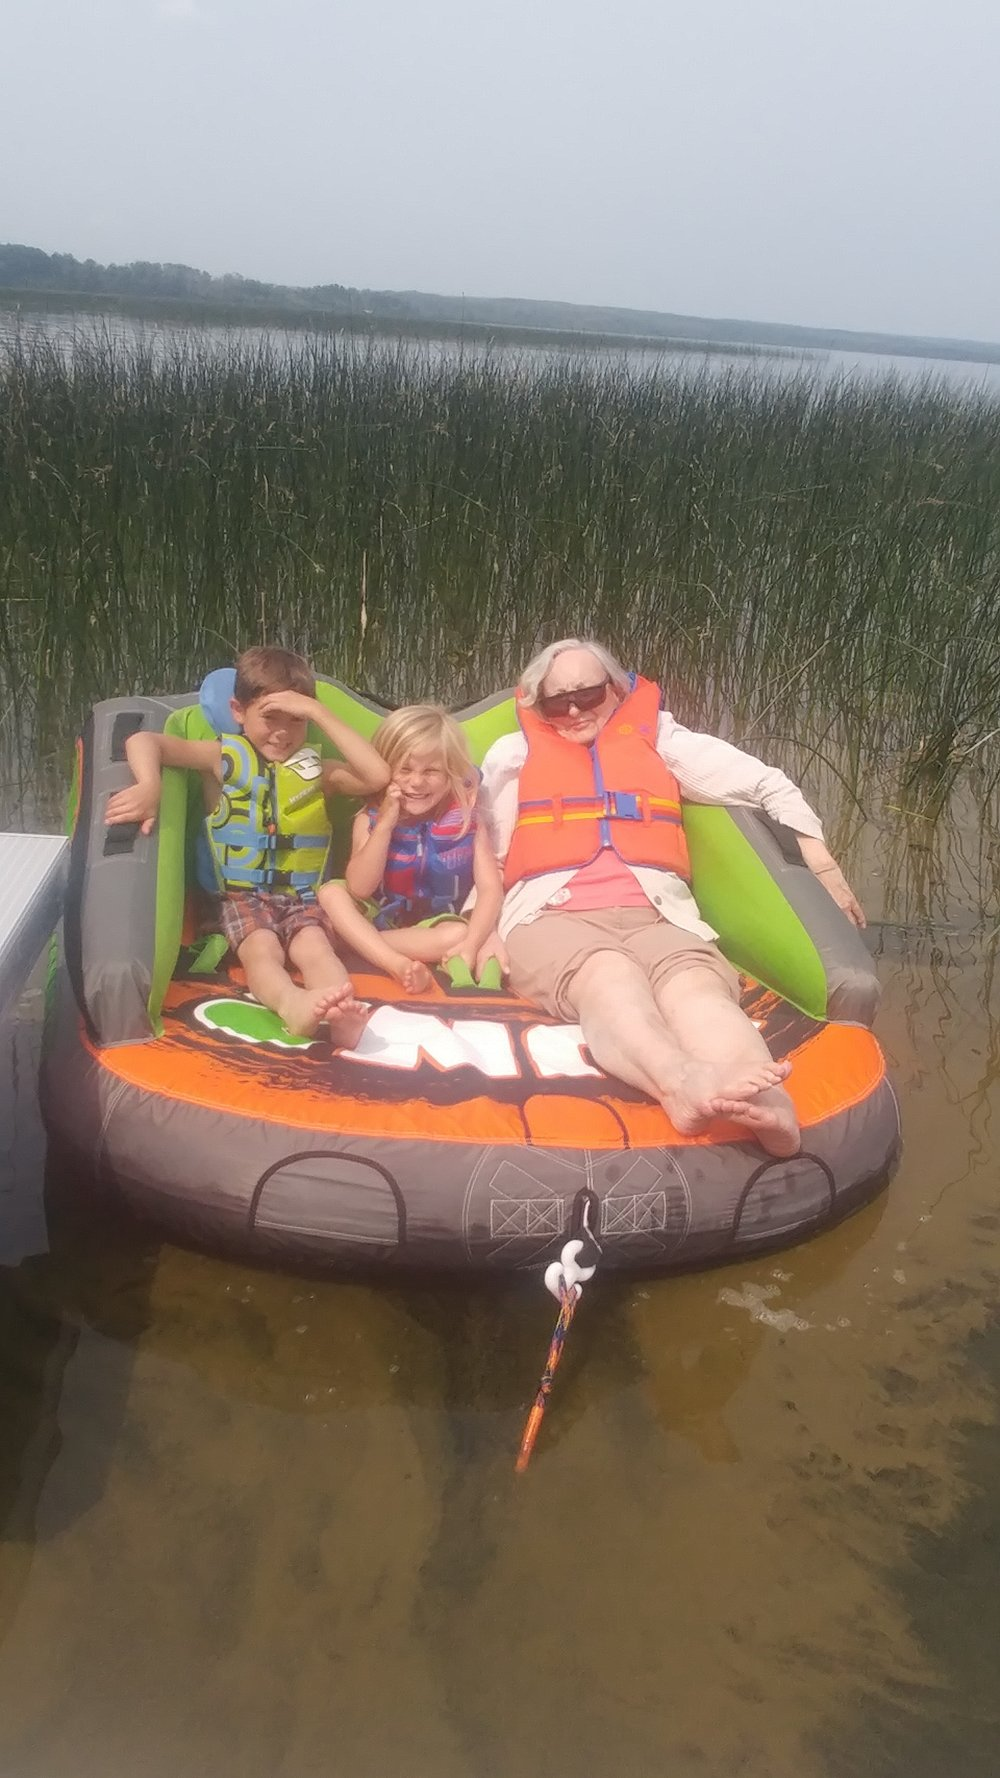 Grandma tubing with the kids at the cabin